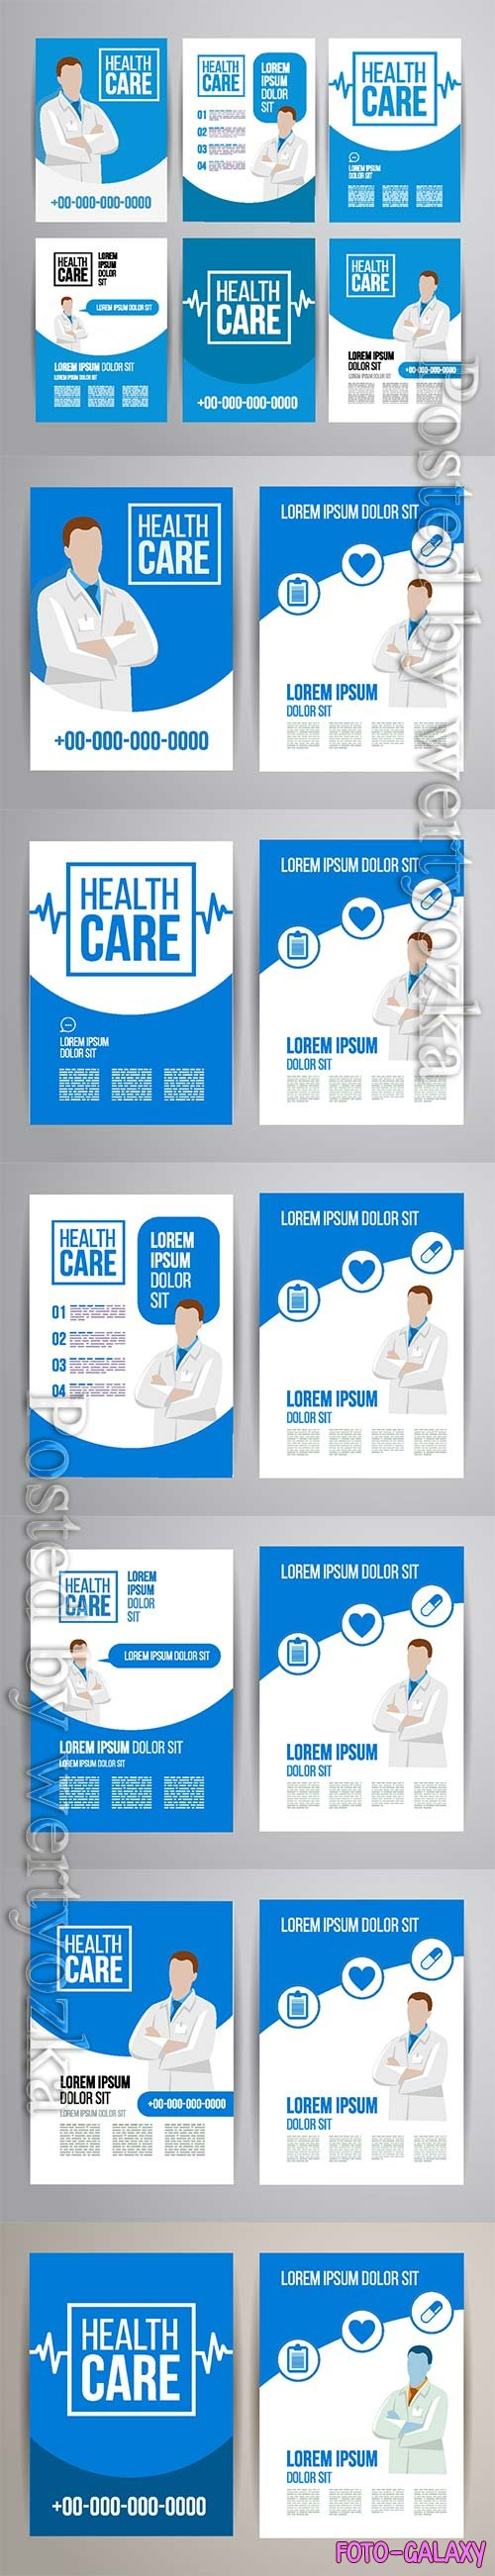 Healthcare brochure concept, clinic flyer design with doctor and medical icons